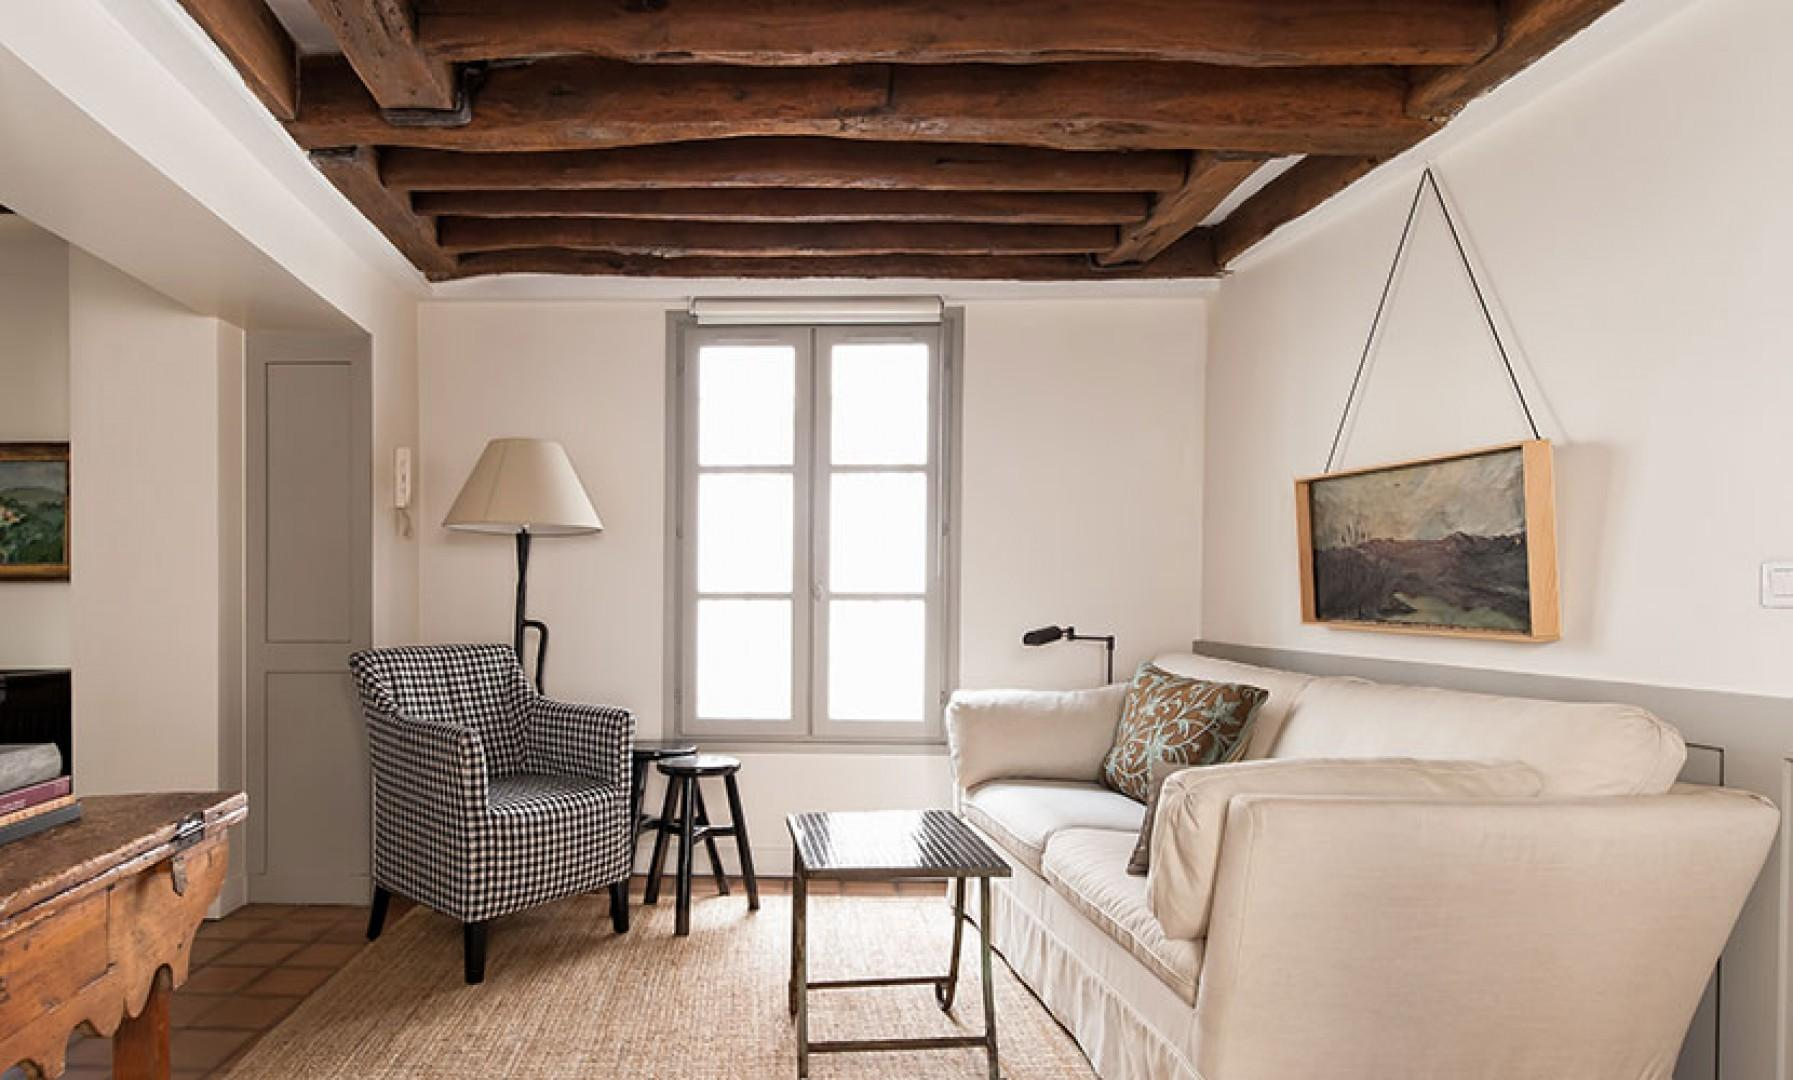 You will love the wooden ceiling beams that add original charm.